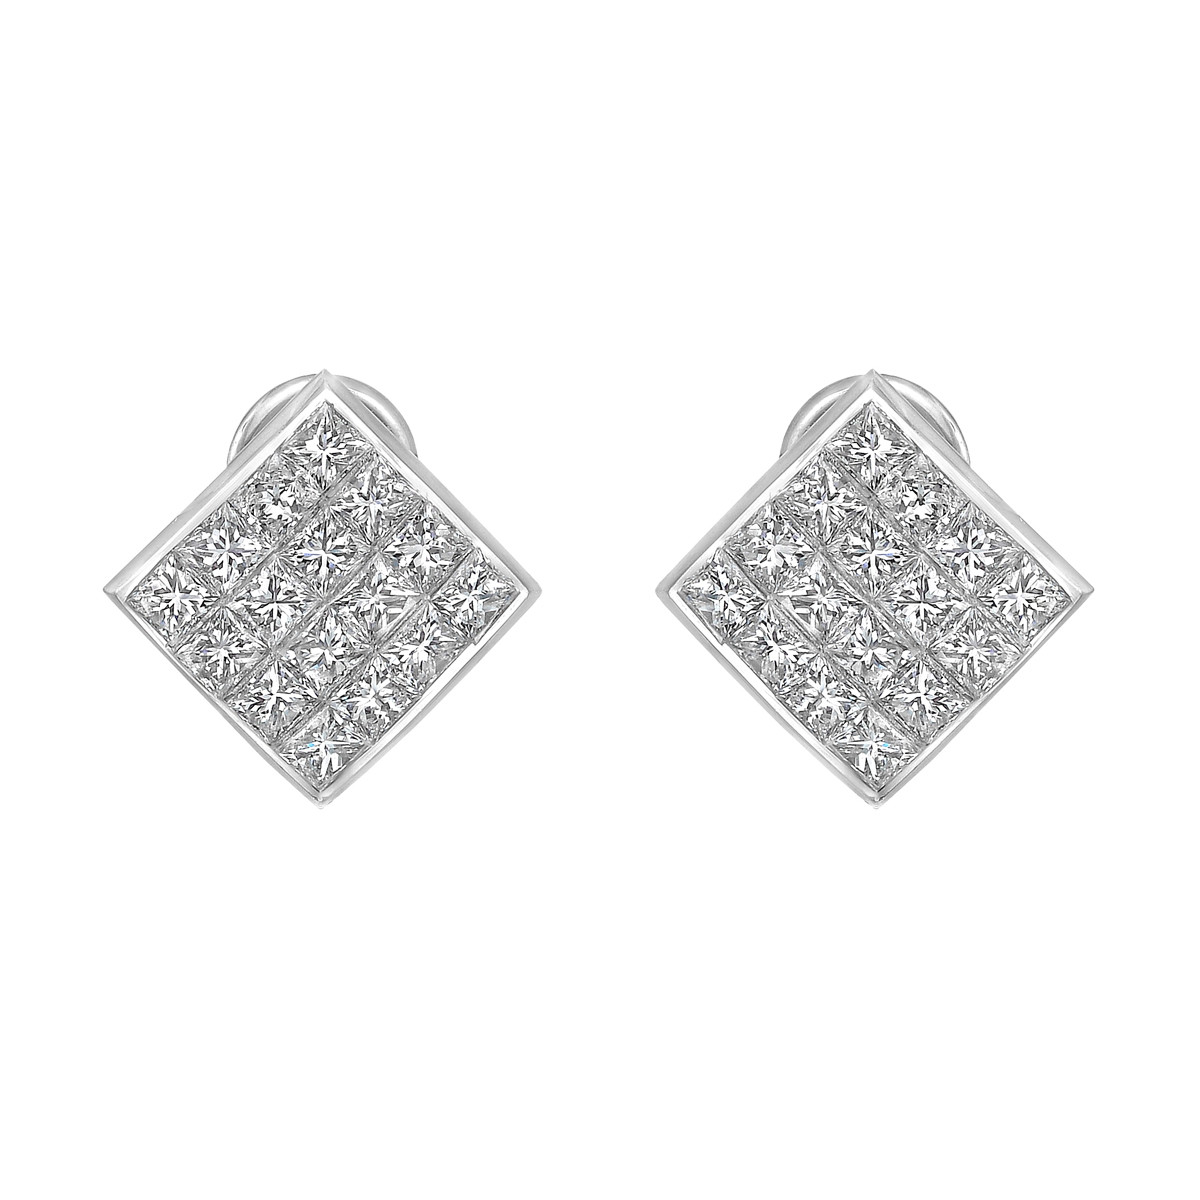 Platinum & Quadrillion-Cut Diamond Square Earrings